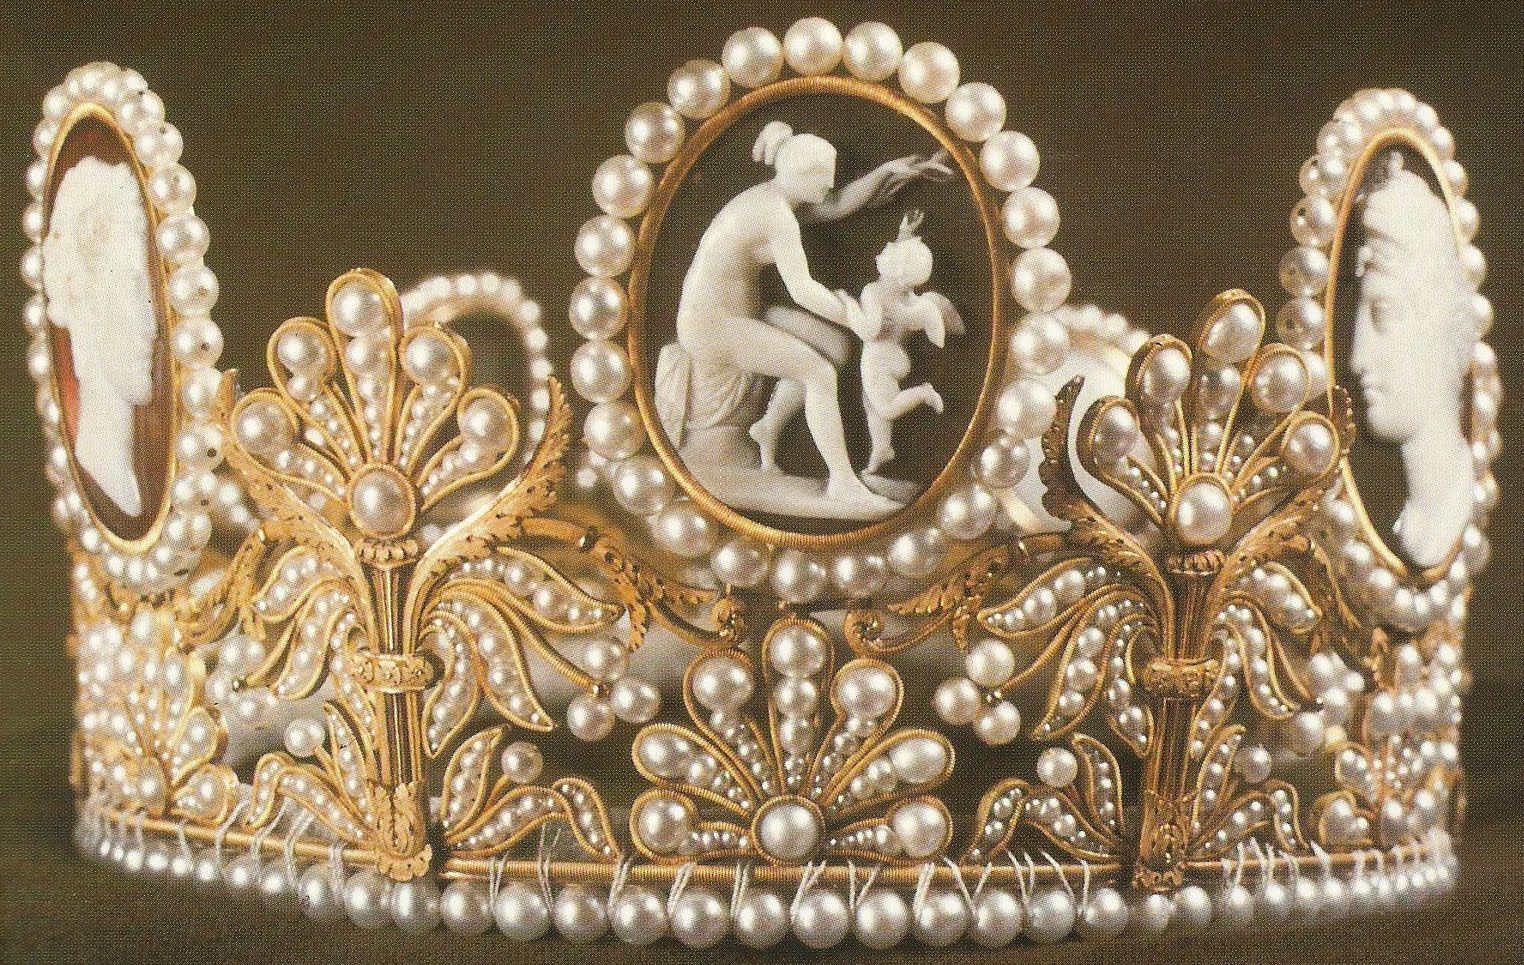 The Cameo tiara The Empress Josephine's Cameo Tiara (Sweden) is a gift from Napoleon to Empress Josephine of France. This bridal crown features plenty of pearls and seven cameos which describe mythological figures such as Cupid and Psyche.